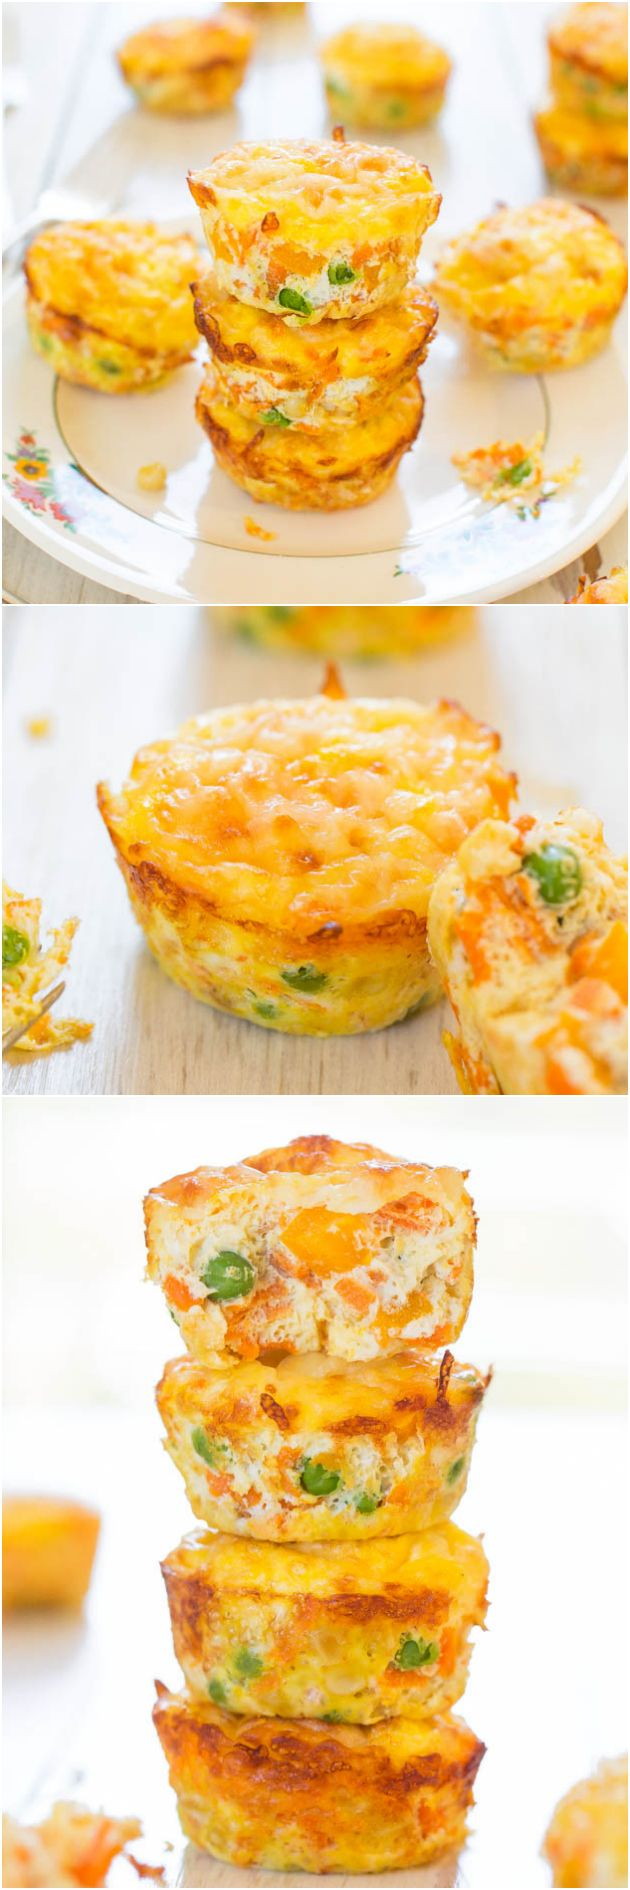 100-Calorie Cheese, Vegetable and Egg Muffins (GF) – Healthy, easy & only 100 calories! You'll want to keep a stash on hand!